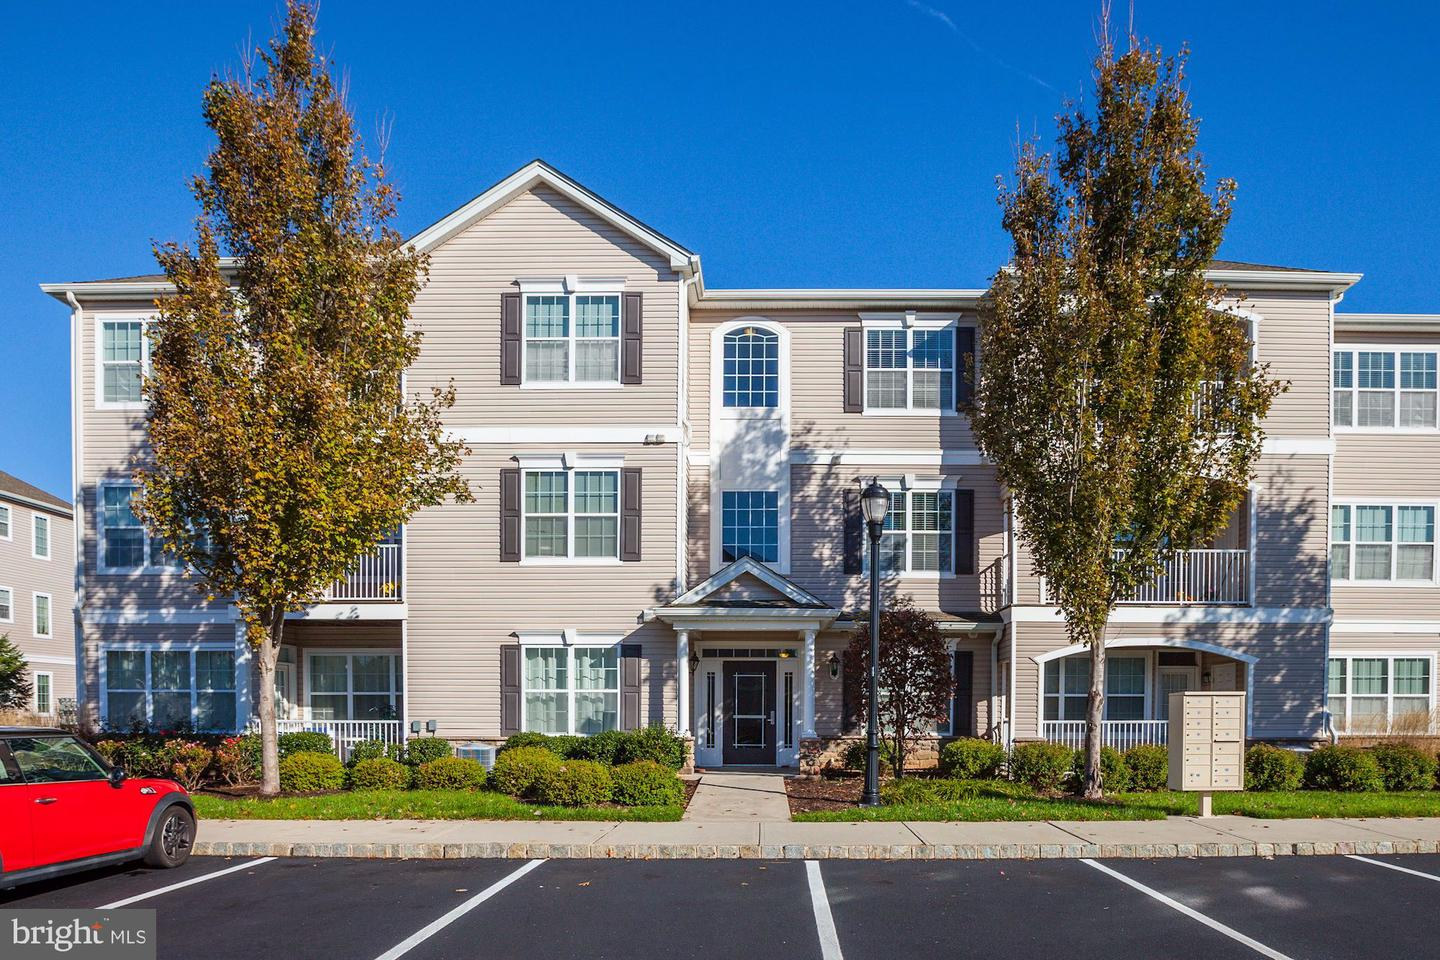 Property for Sale at Ewing, New Jersey 08618 United States